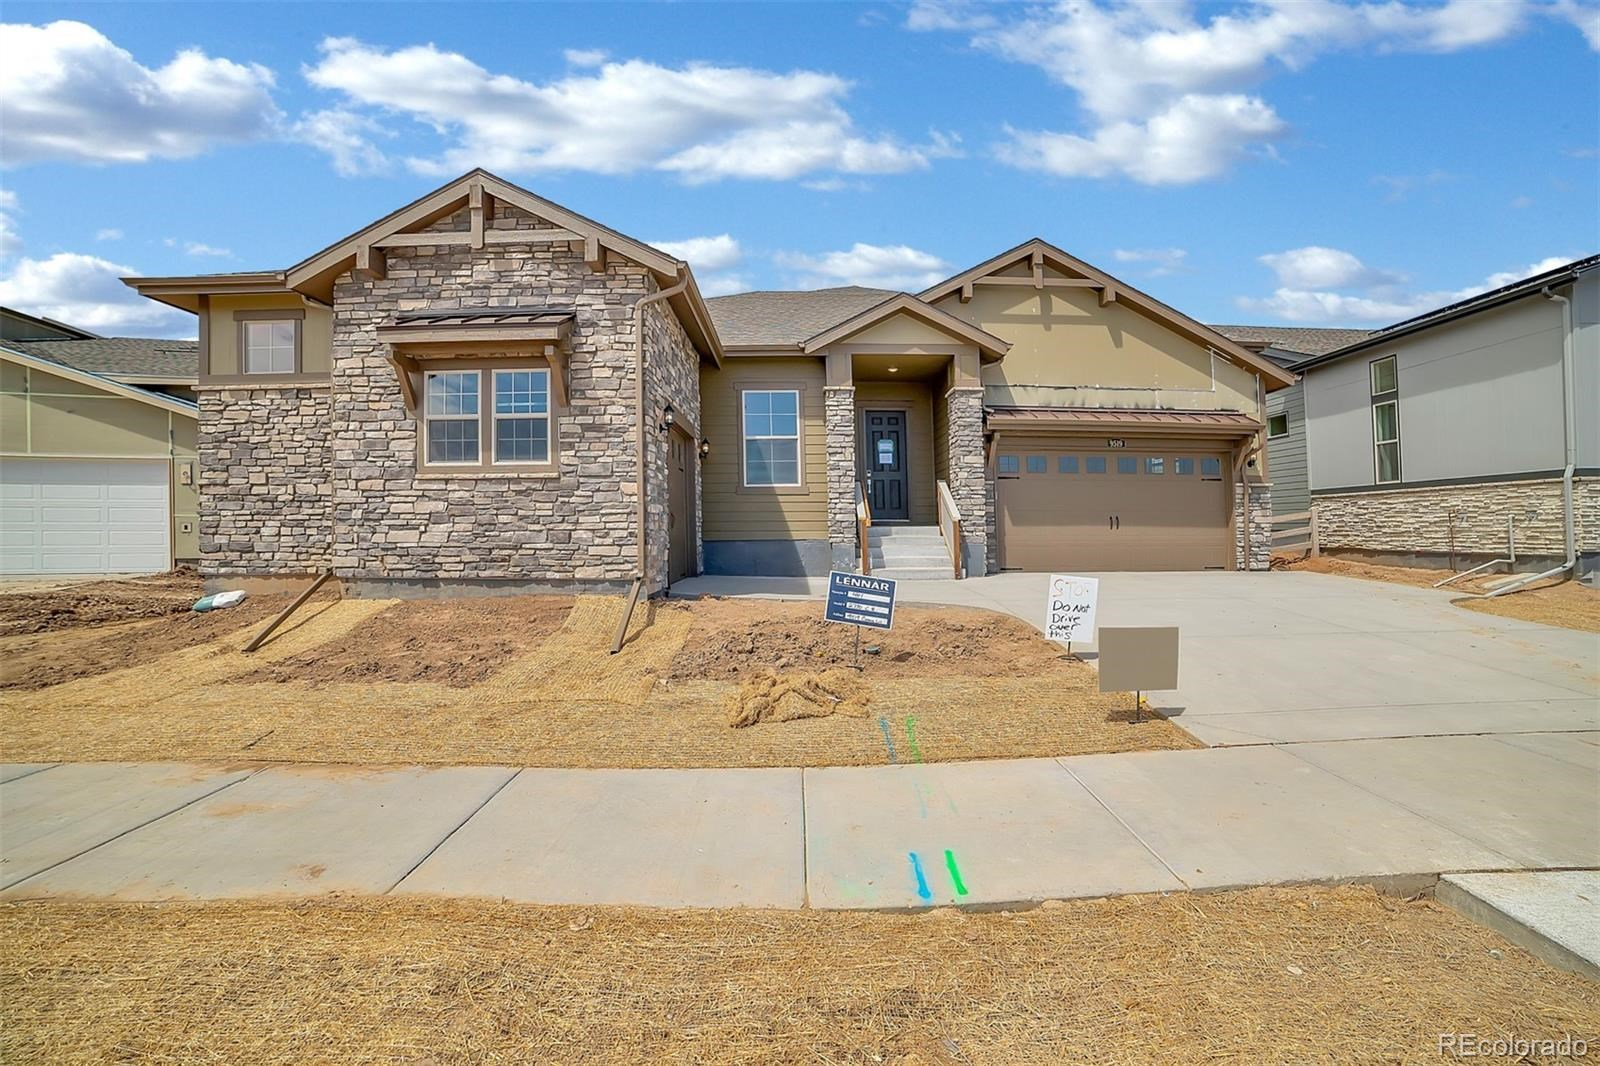 MLS# 4270503 - 9519 Boone Lane, Littleton, CO 80125